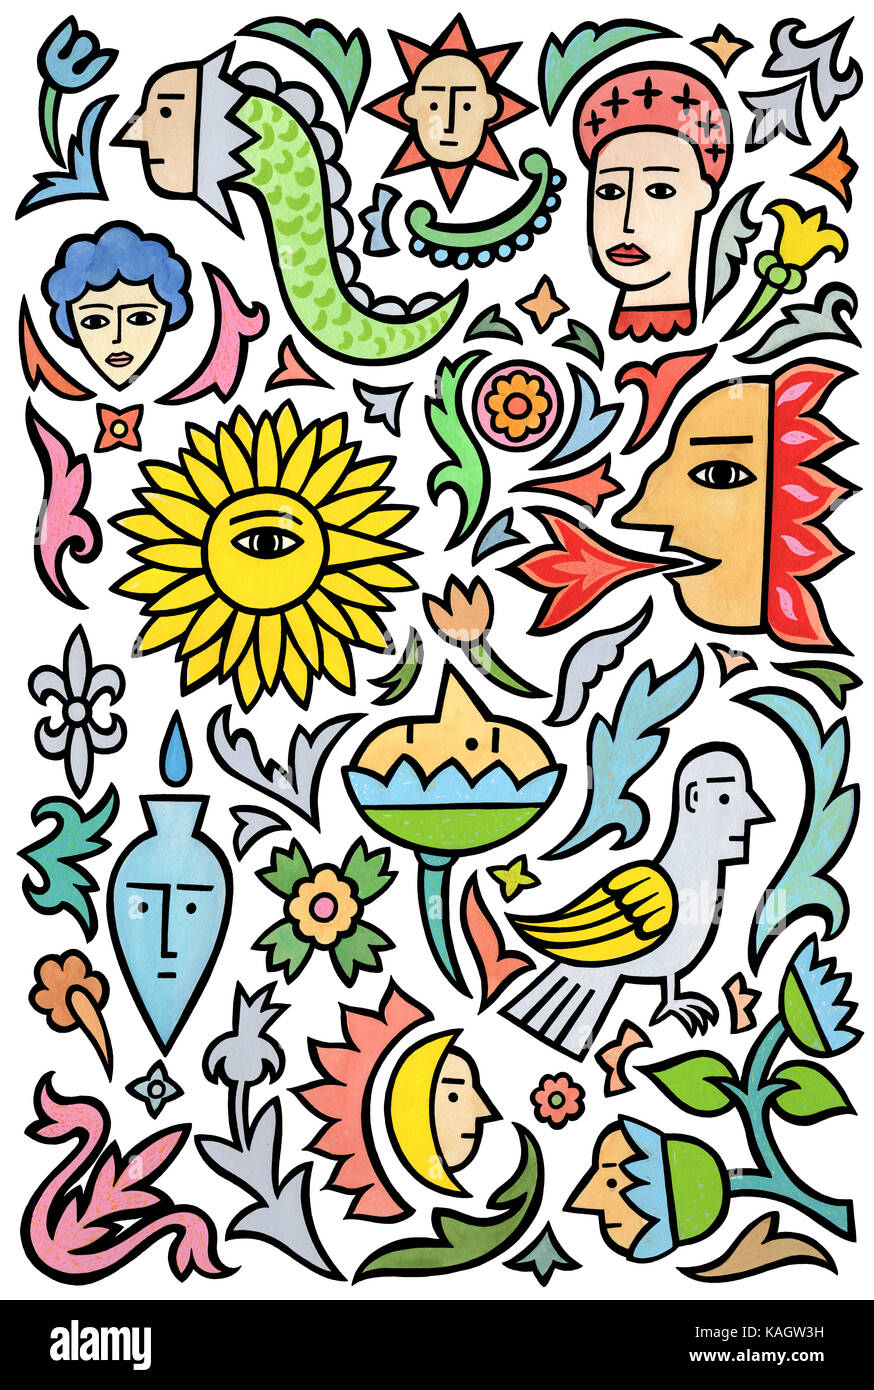 Many things. A page of various designs based on tattoos.Stock Photo